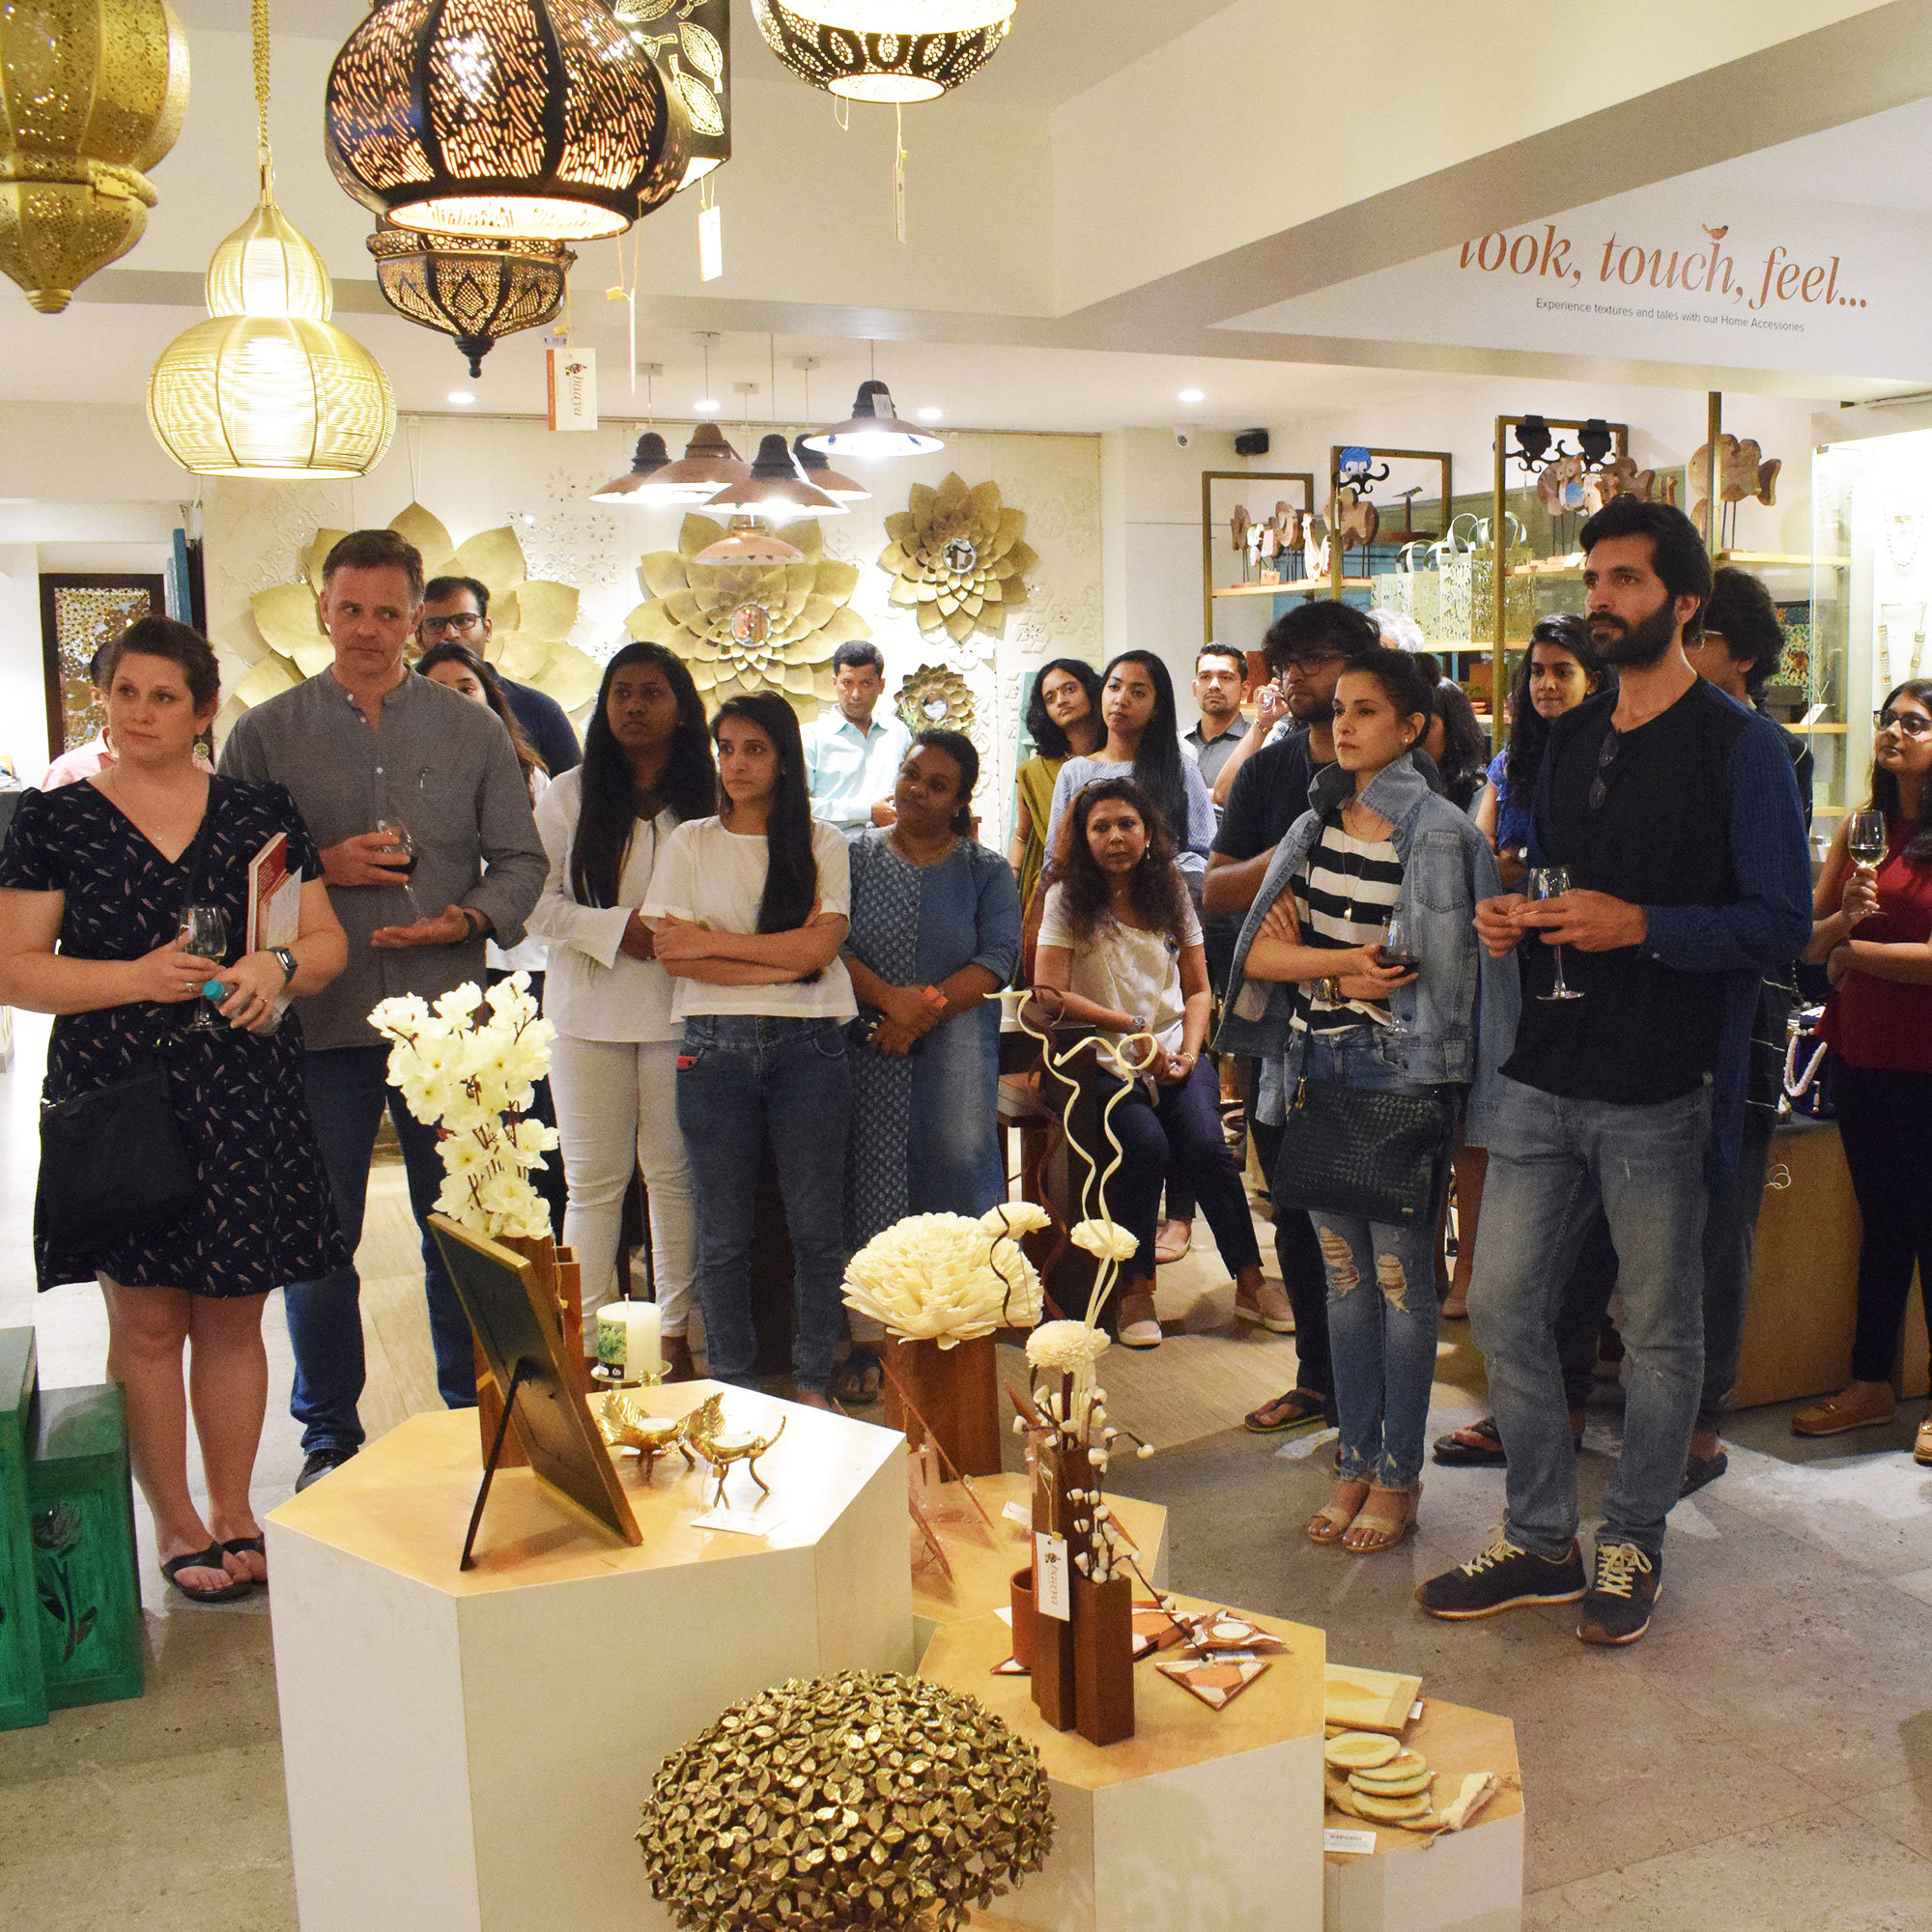 The audience in attendance watches a Baaya presentation on our design interventions towards reviving rare Indian crafts